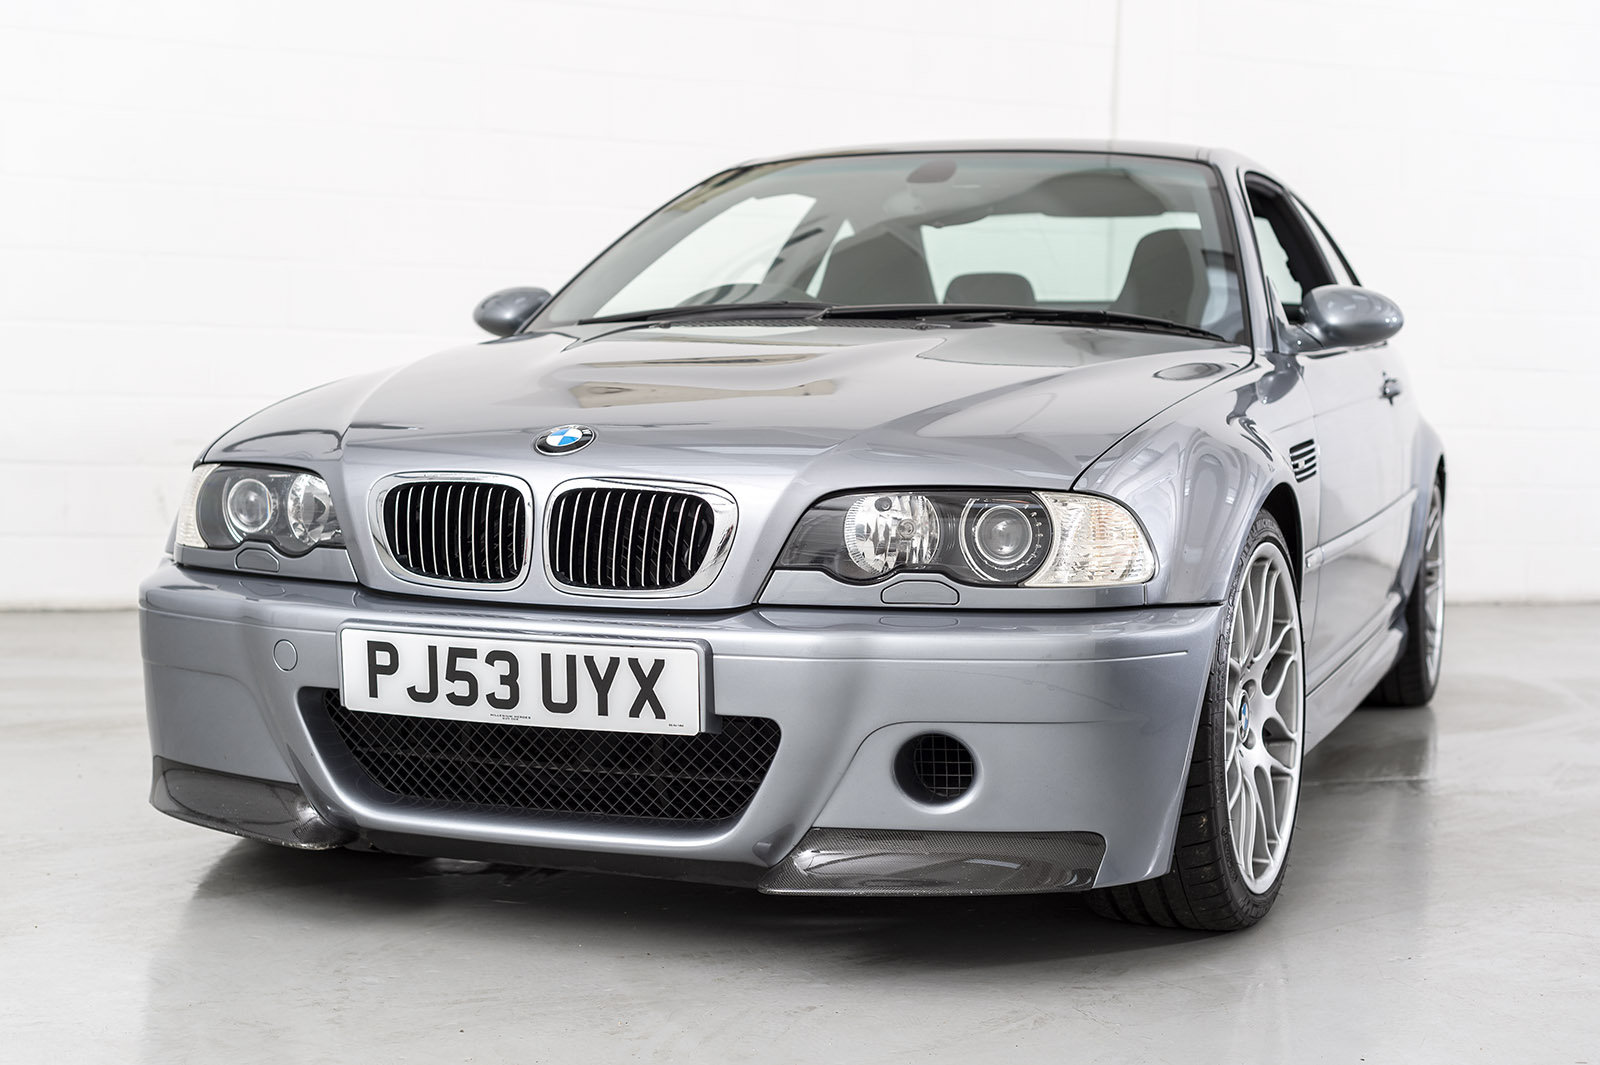 2003 BMW M3 E46 CSL For Sale (picture 4 of 6)